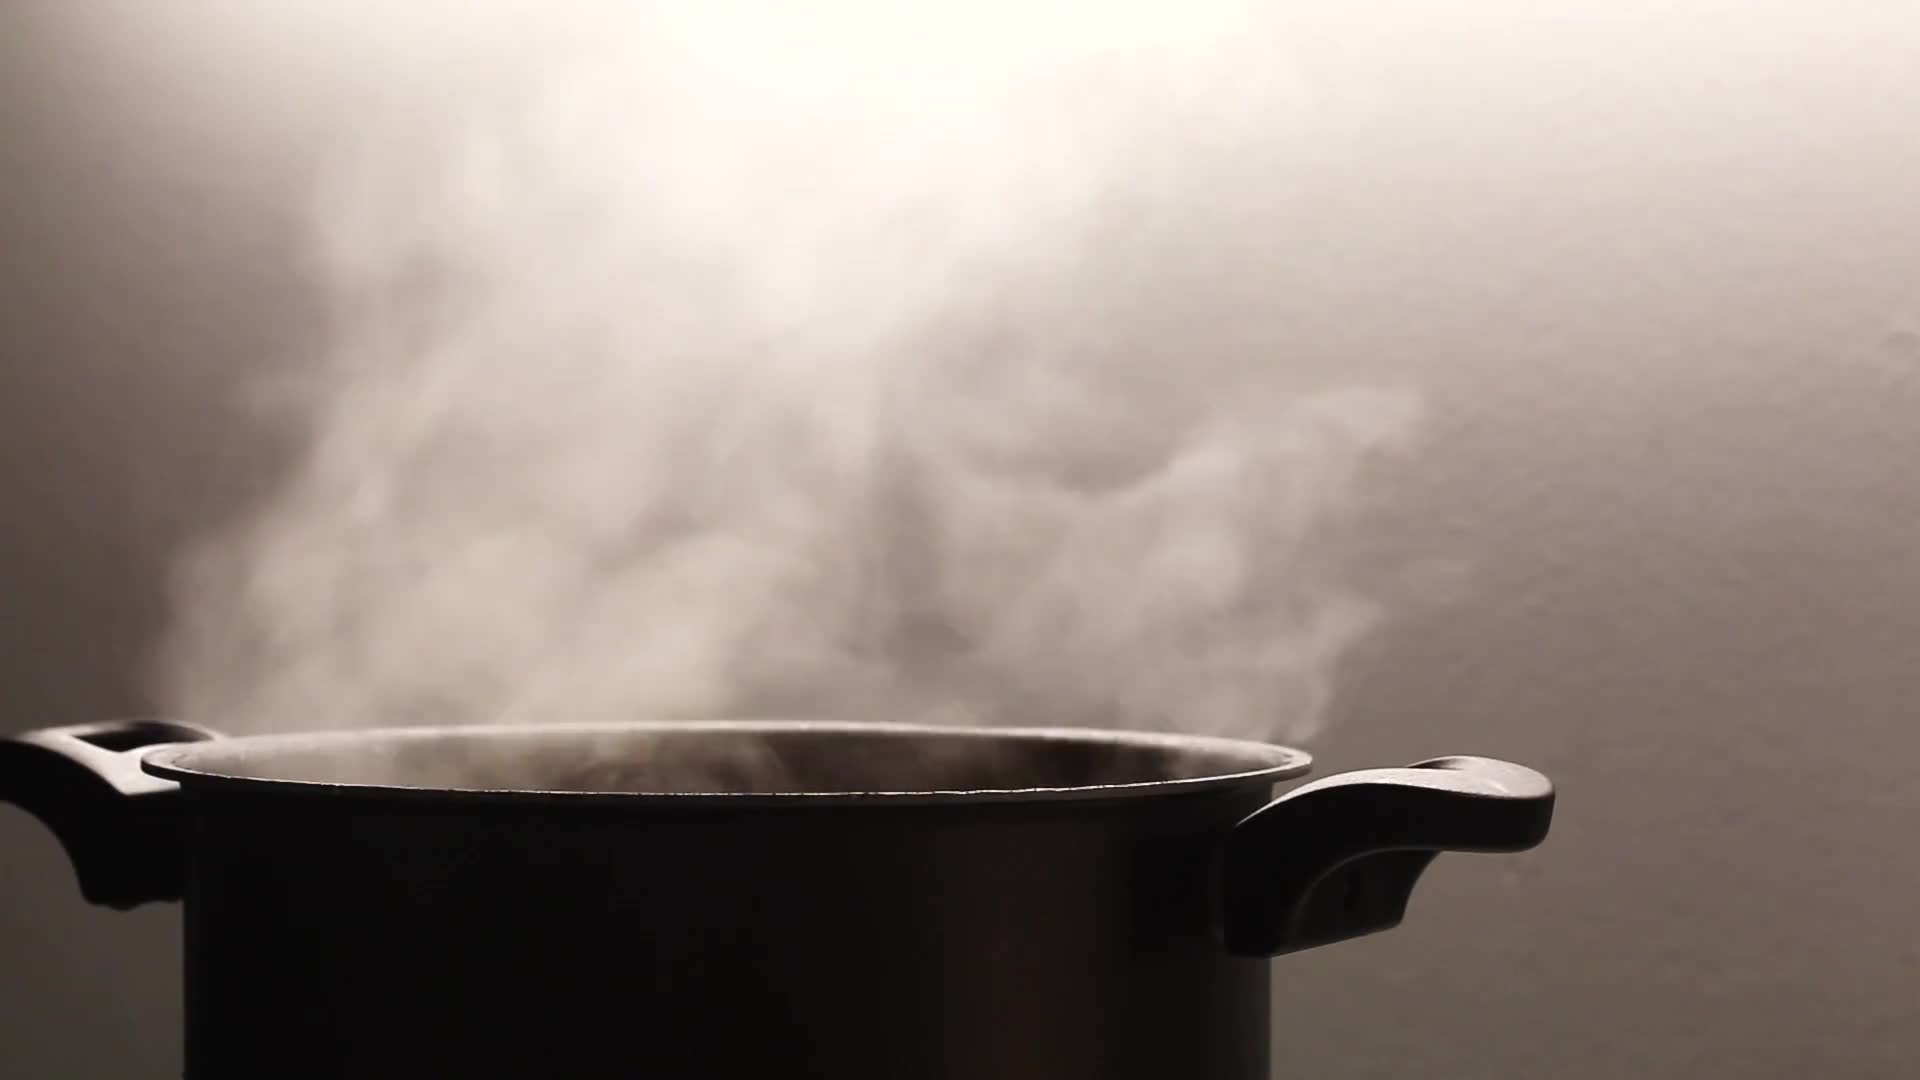 Pot cooking steam steaming hot